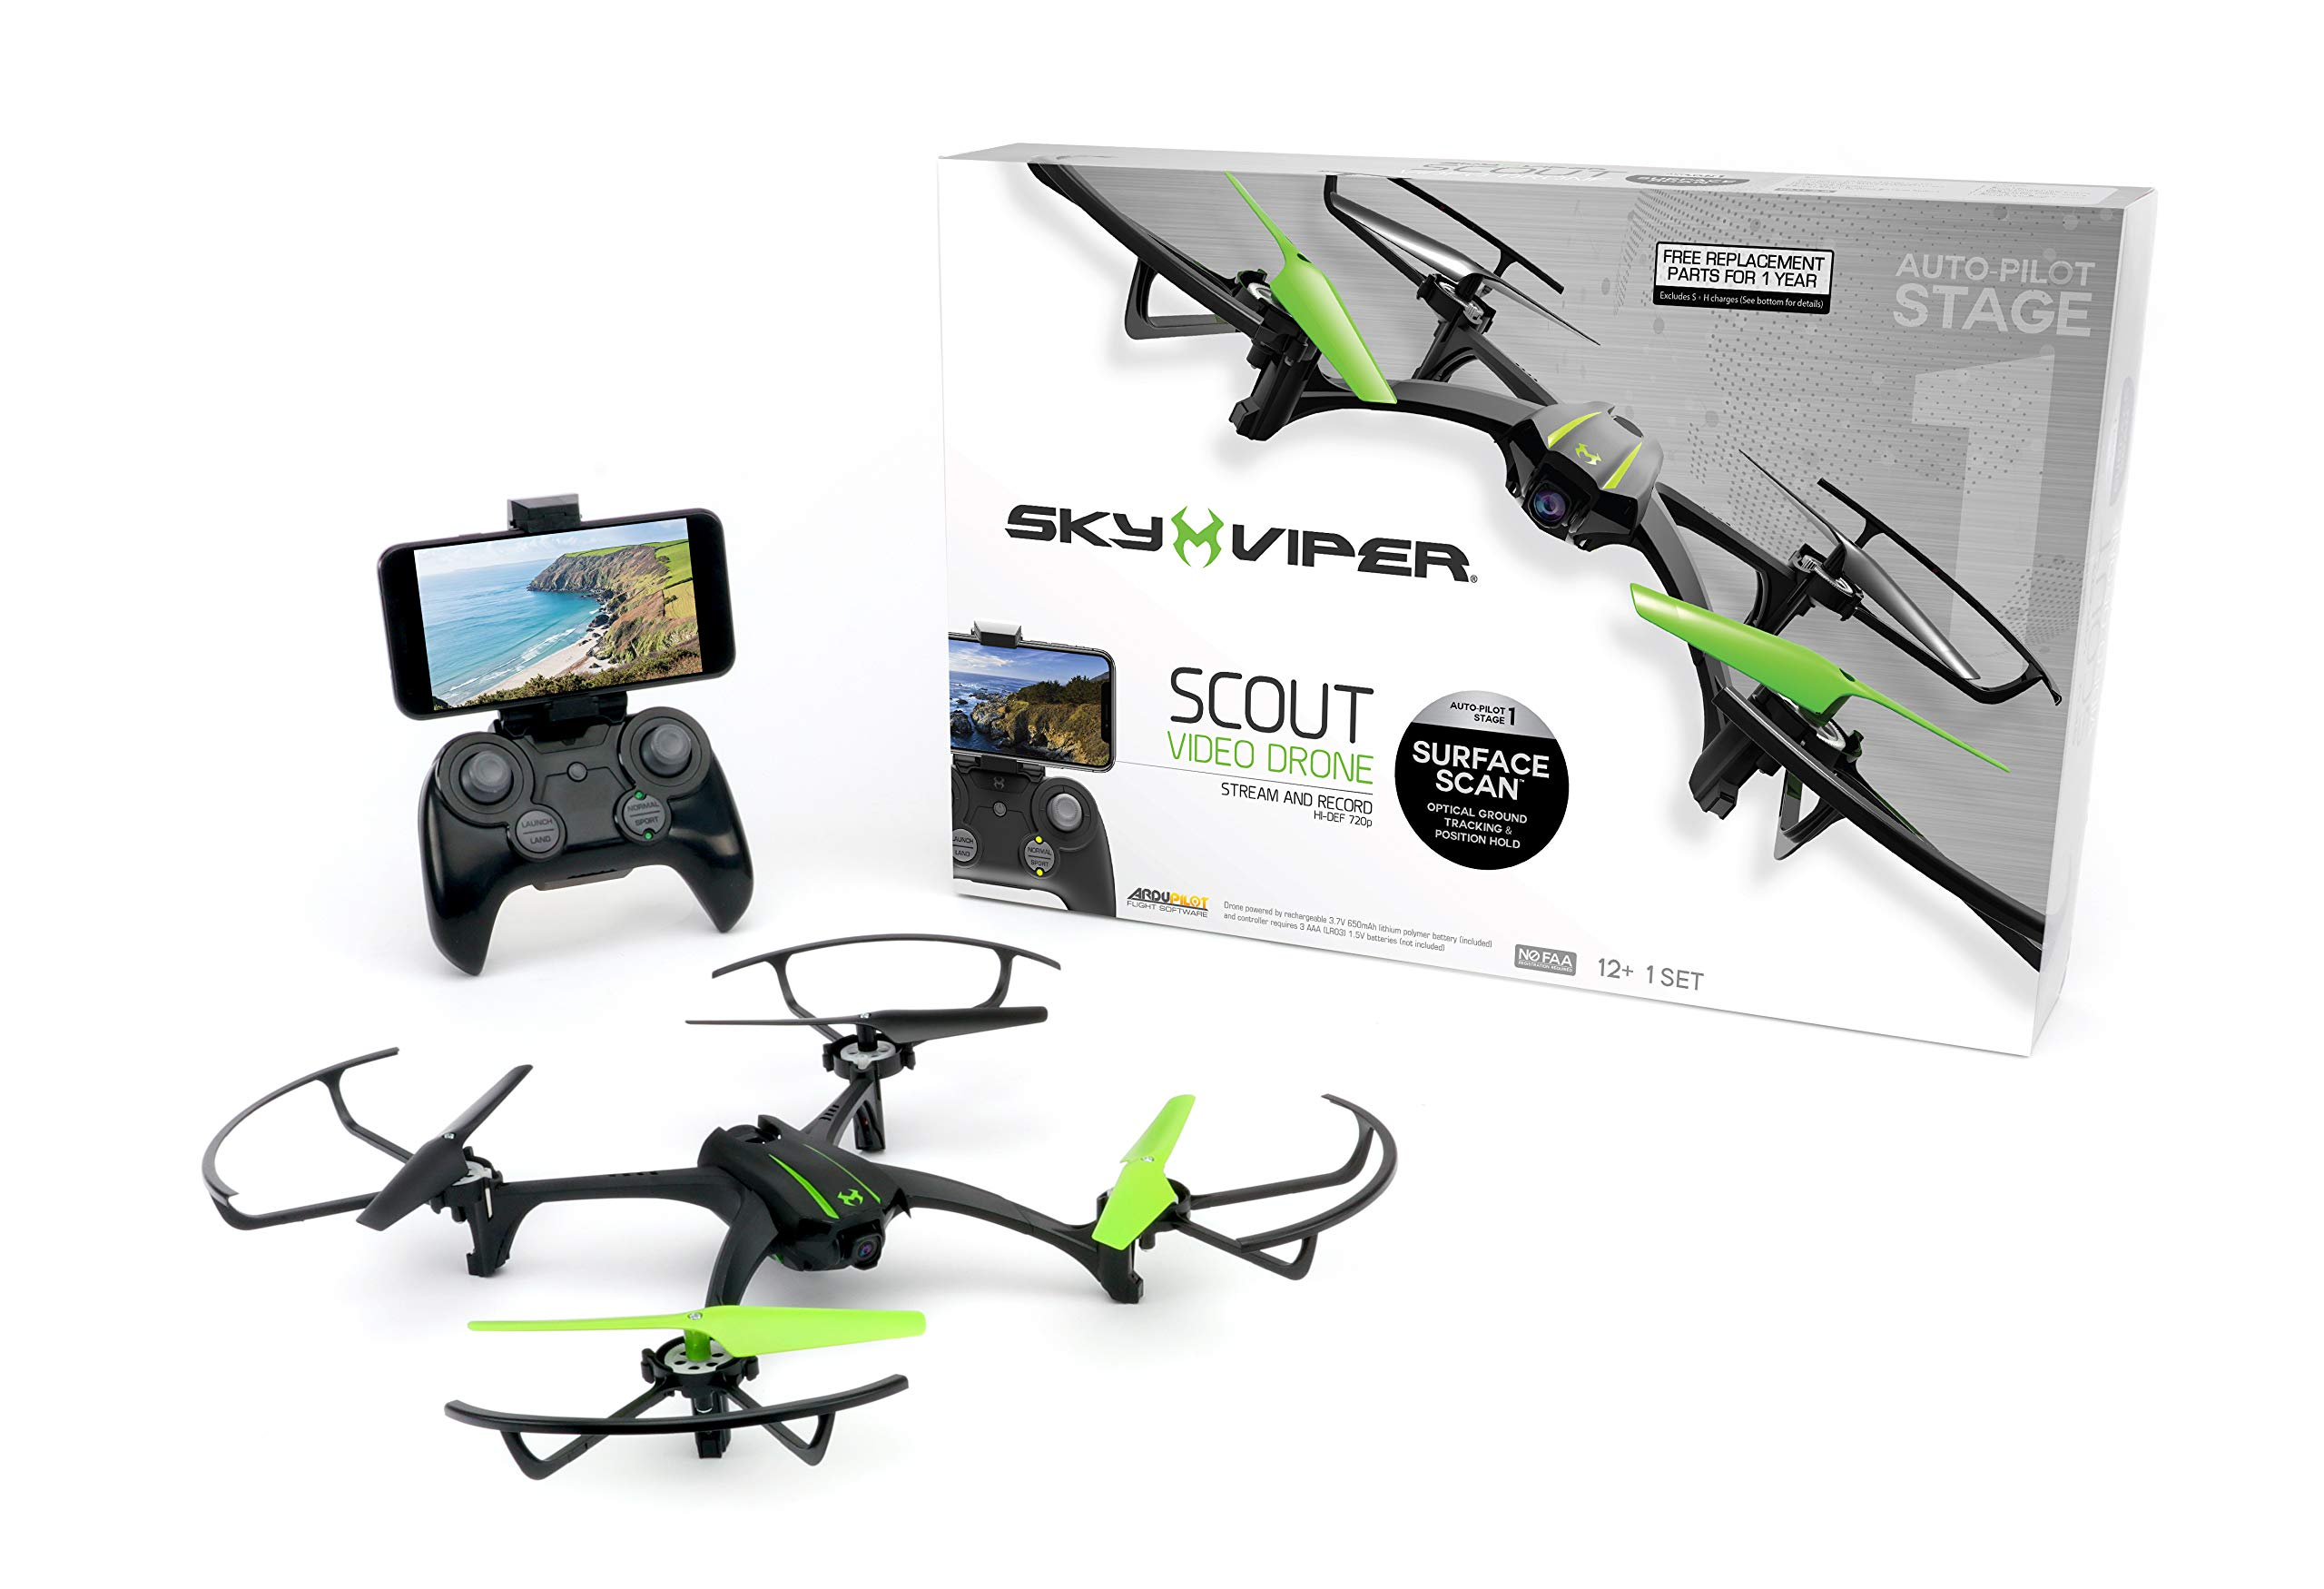 Sky Viper Scout Streaming Video Drone, Black/Green by Sky Viper (Image #1)